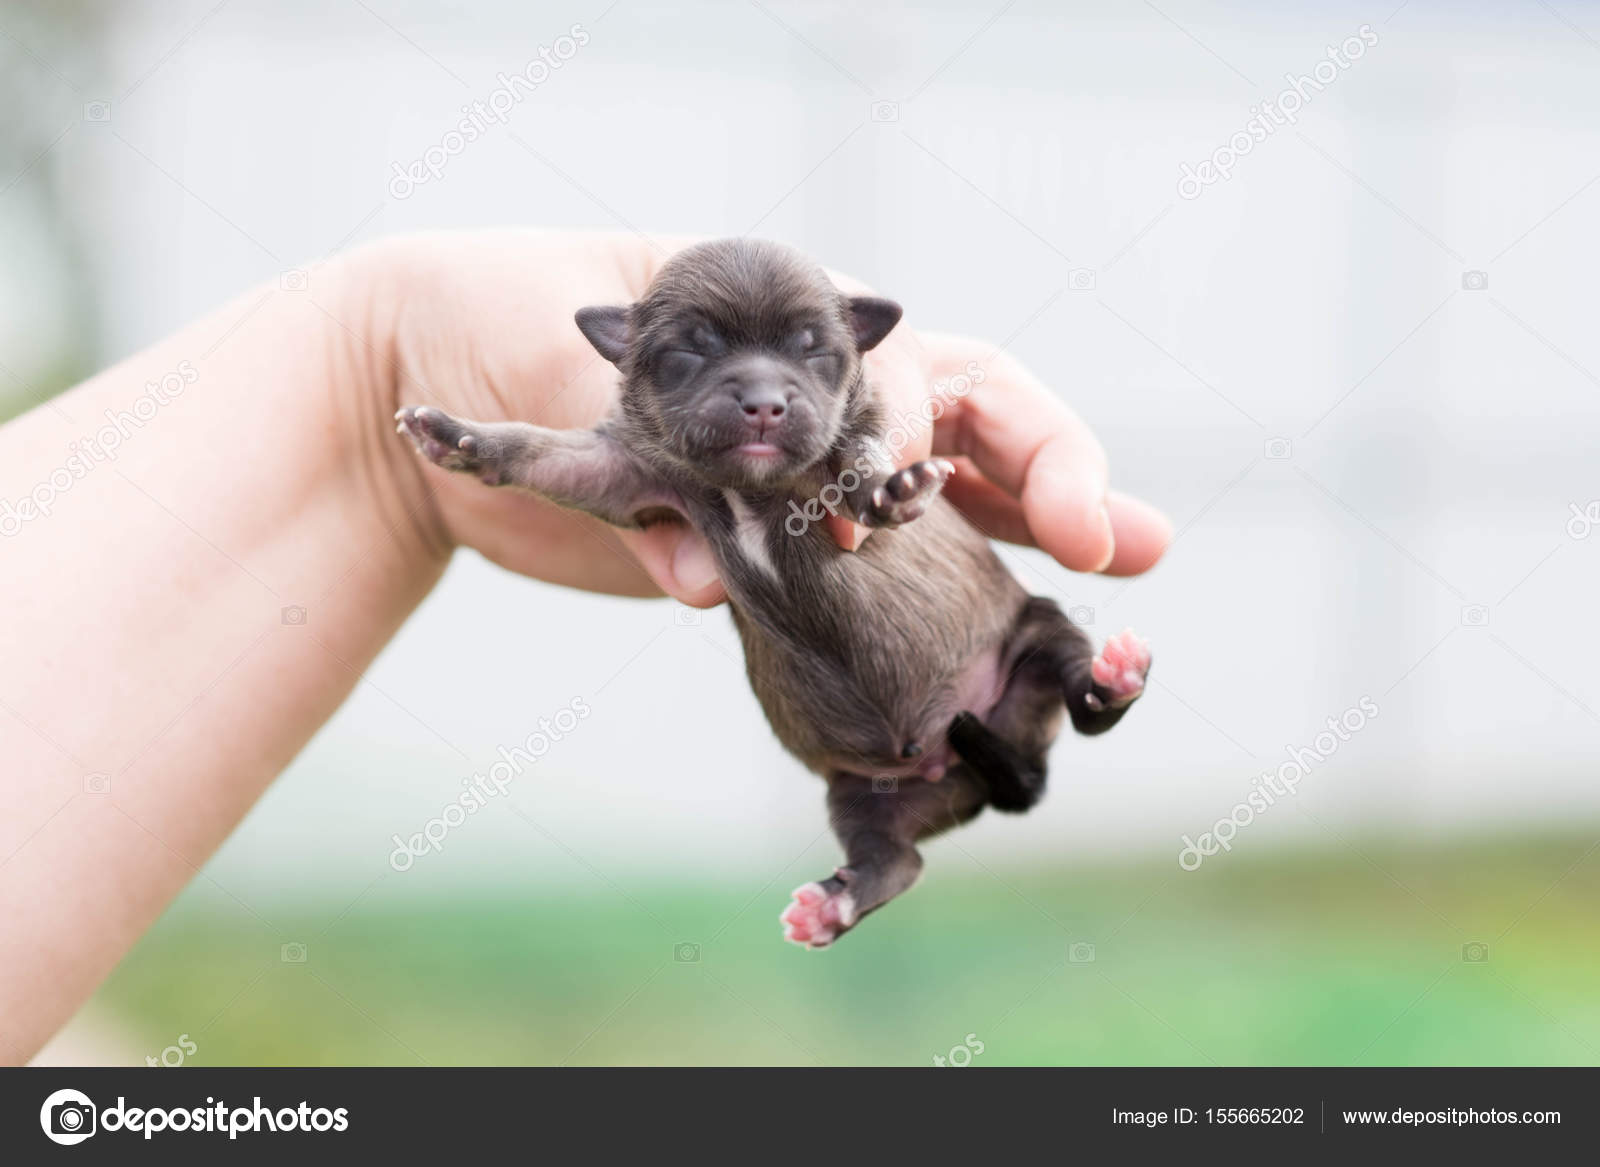 Pictures Really Cute Puppies Very Cute Black Puppies Beautiful Puppies Stock Photo C Elinkac 155665202